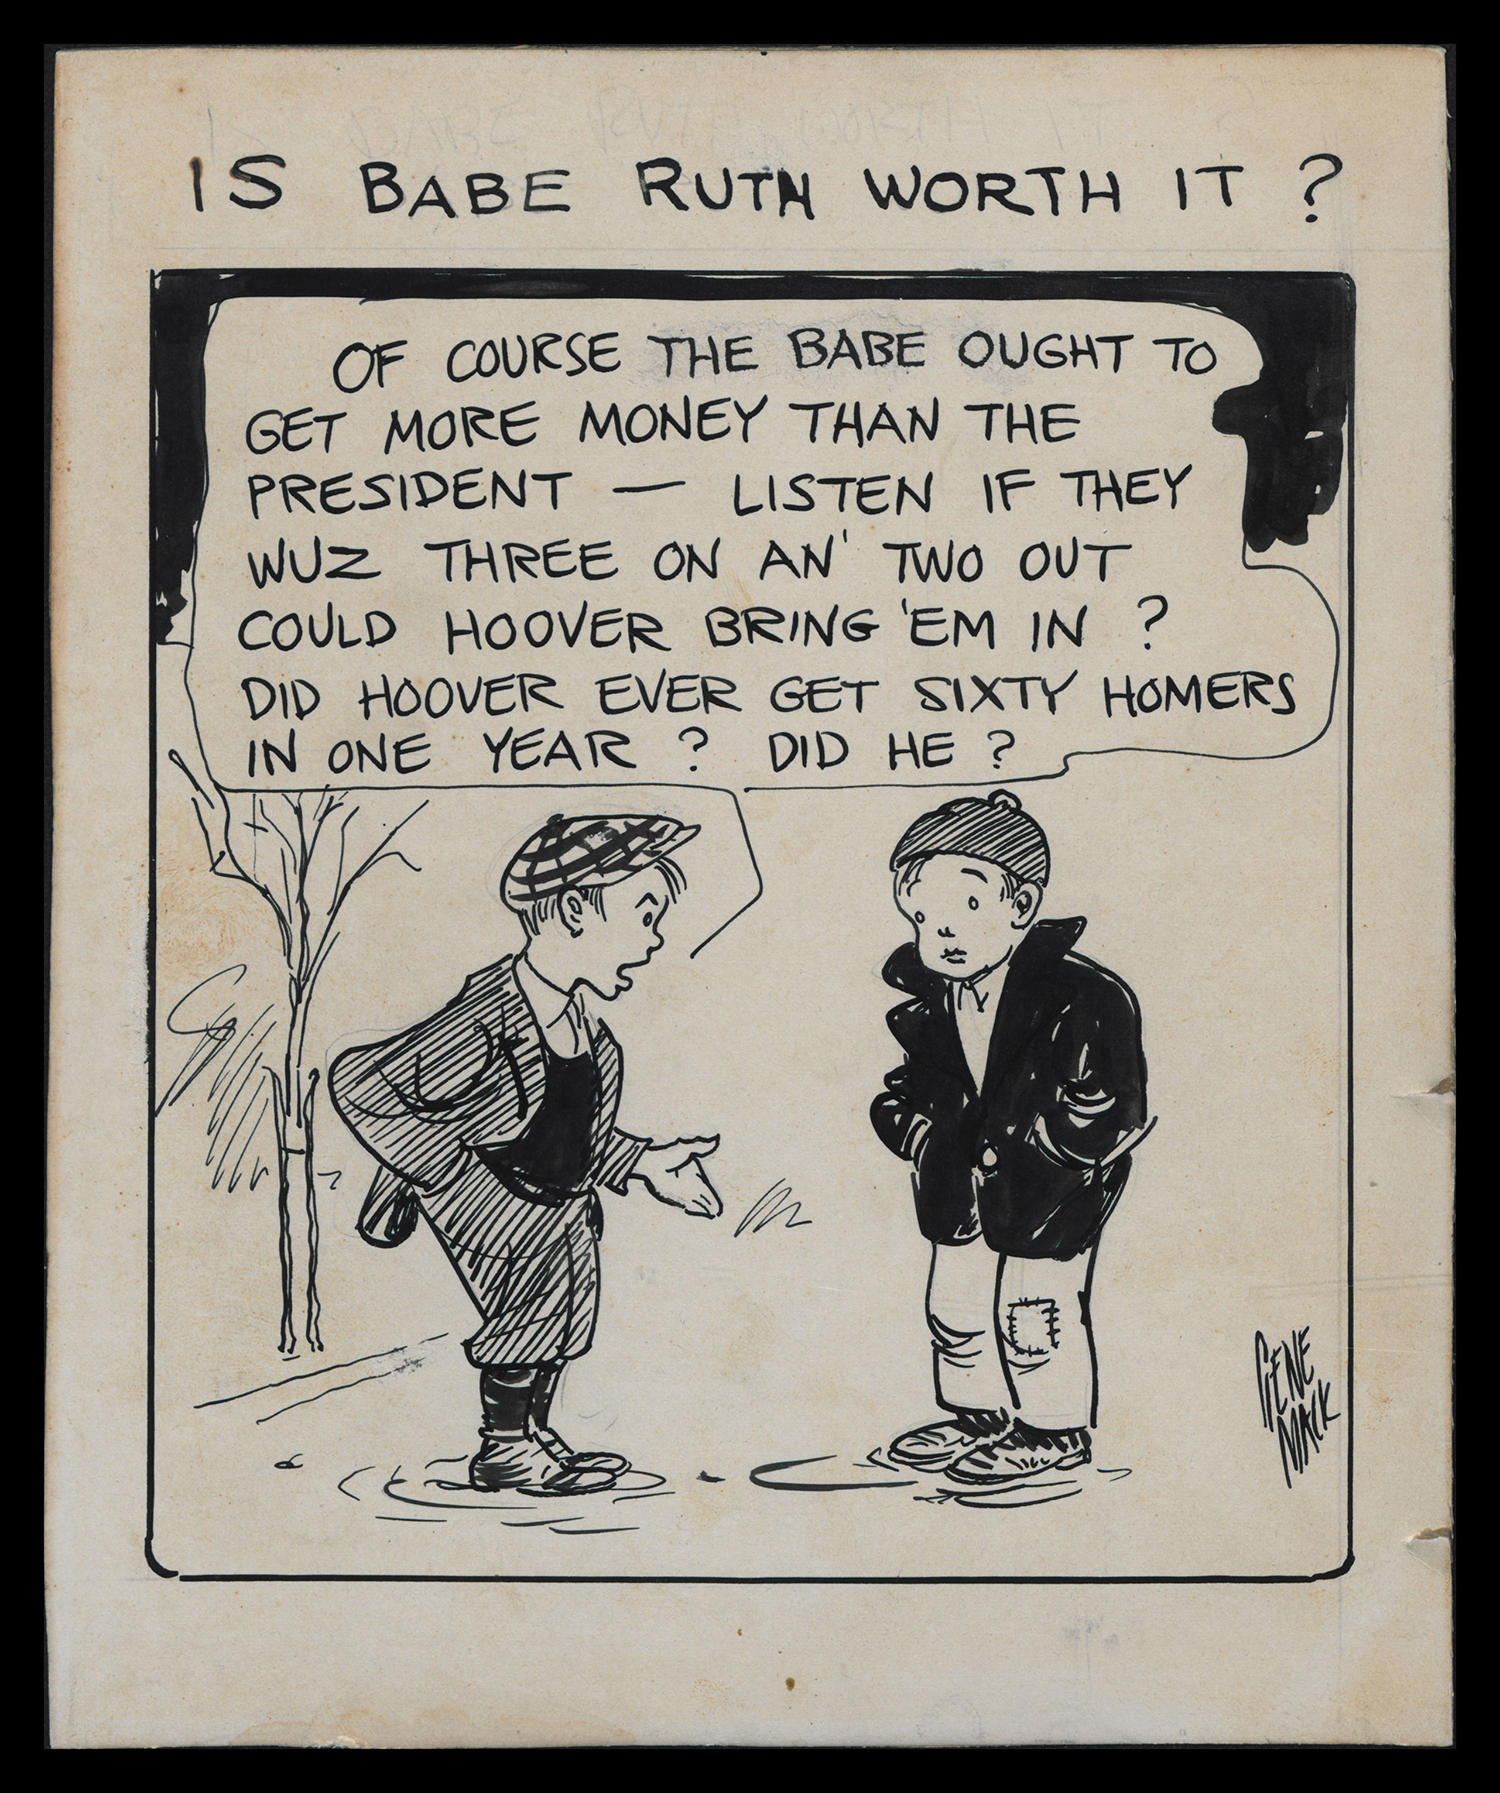 "Gene Mack's cartoon <a href=""http://collection.baseballhall.org/islandora/object/islandora%3A273610"">Is Babe Ruth Worth It?</a> commented on Ruth's 1930 salary of a hefty $80,000, which was seen by many as extravagant, especially during the Great Depression. (National Baseball Hall of Fame)"